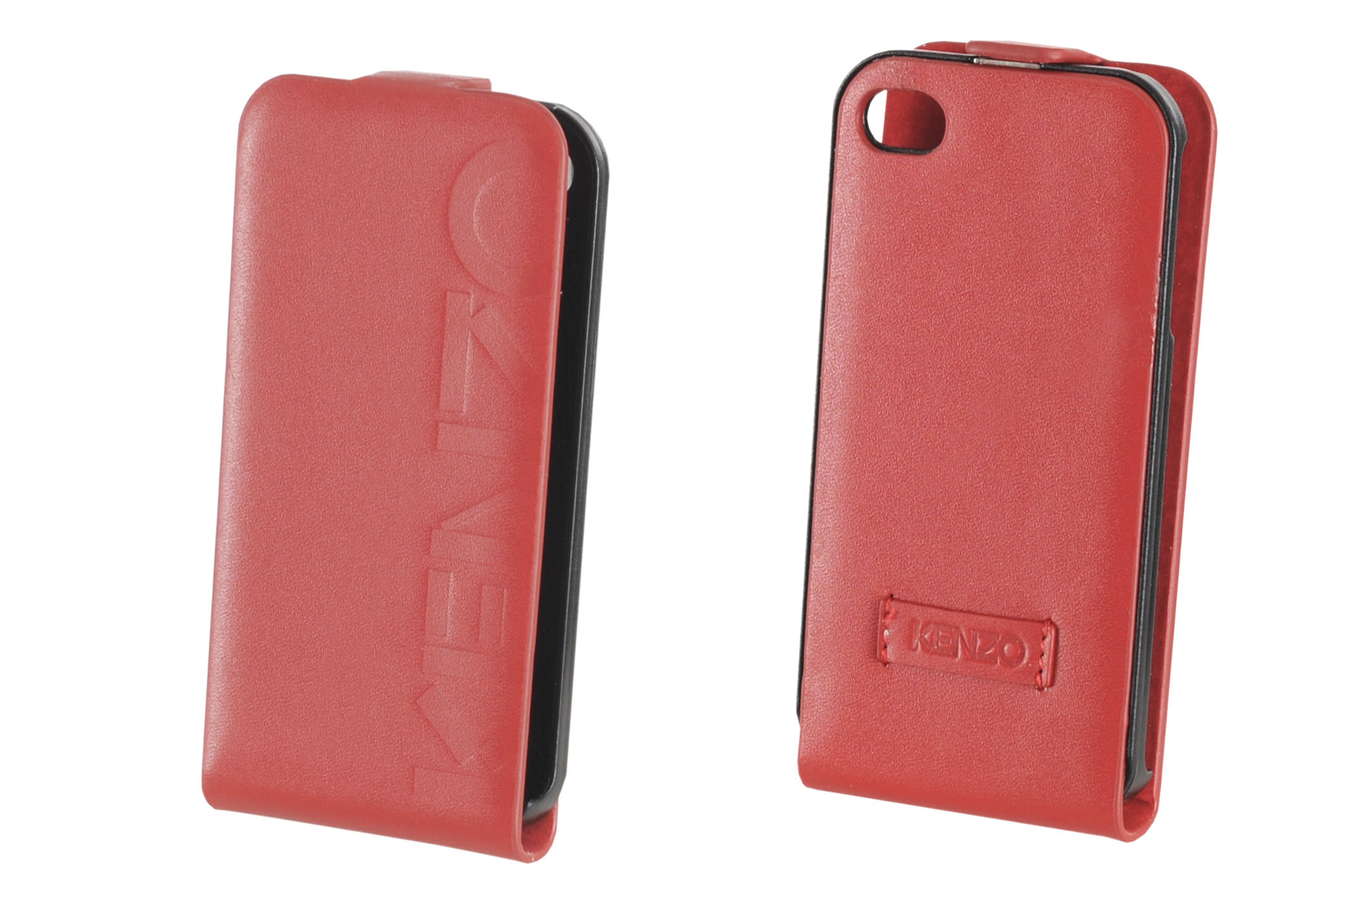 Housse pour iphone kenzo etui cuir iphone 4 4s 1329294 for Housse iphone 4 cuir